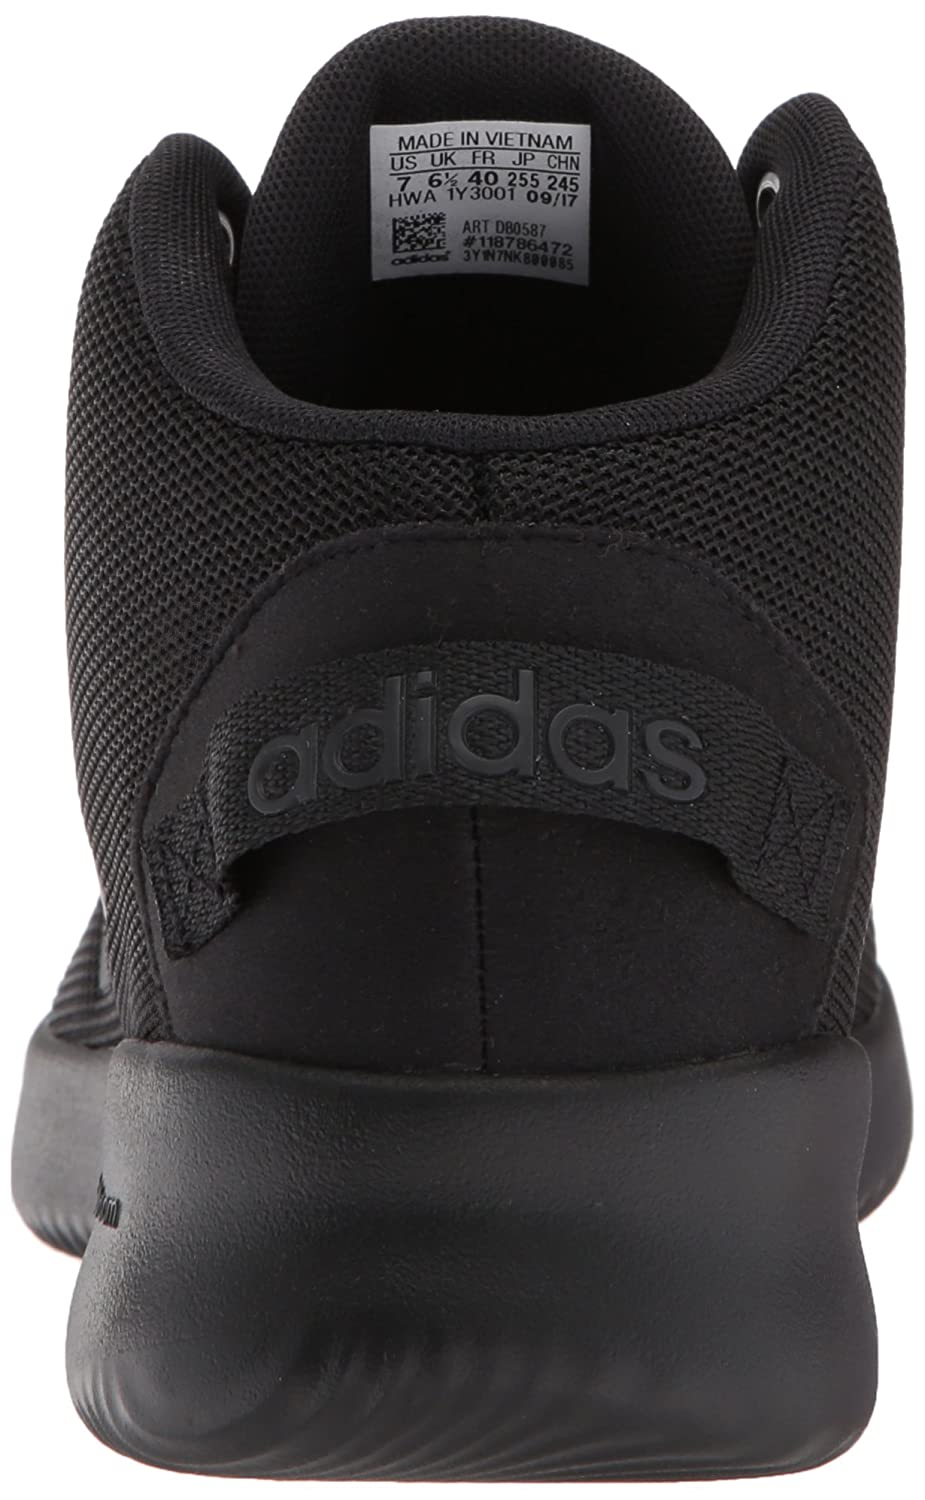 Men/Women adidas Kids' Cf Refresh Refresh Refresh Mid Basketball Shoe High quality and cheap Selected materials King of the crowd AN86105 7d930f